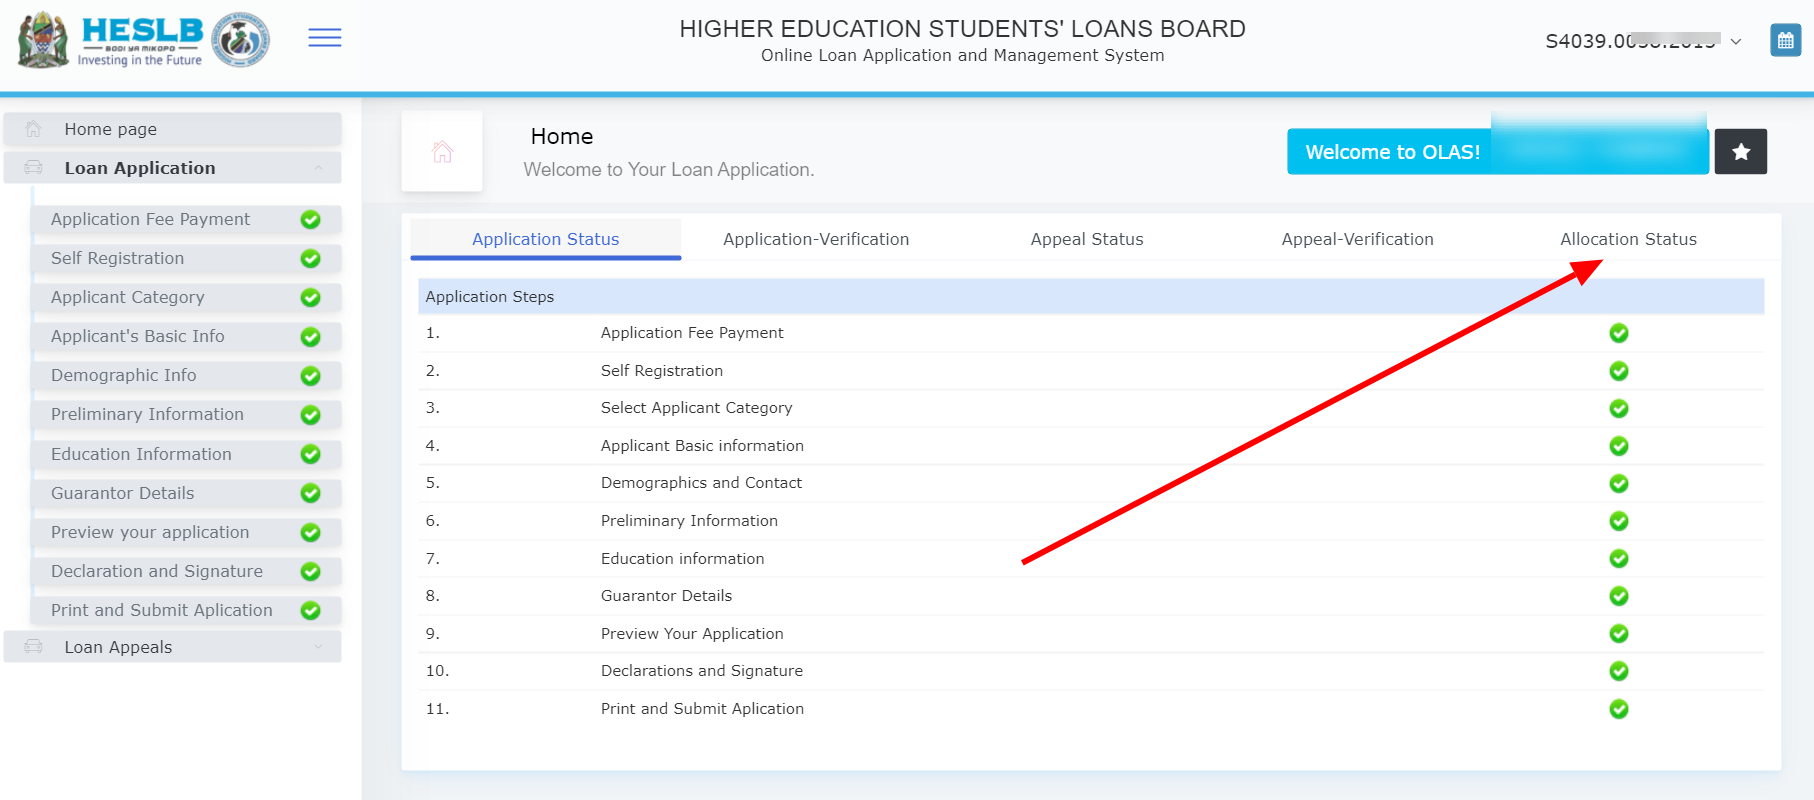 How to check HESLB Loan Allocation Status 2021/2022